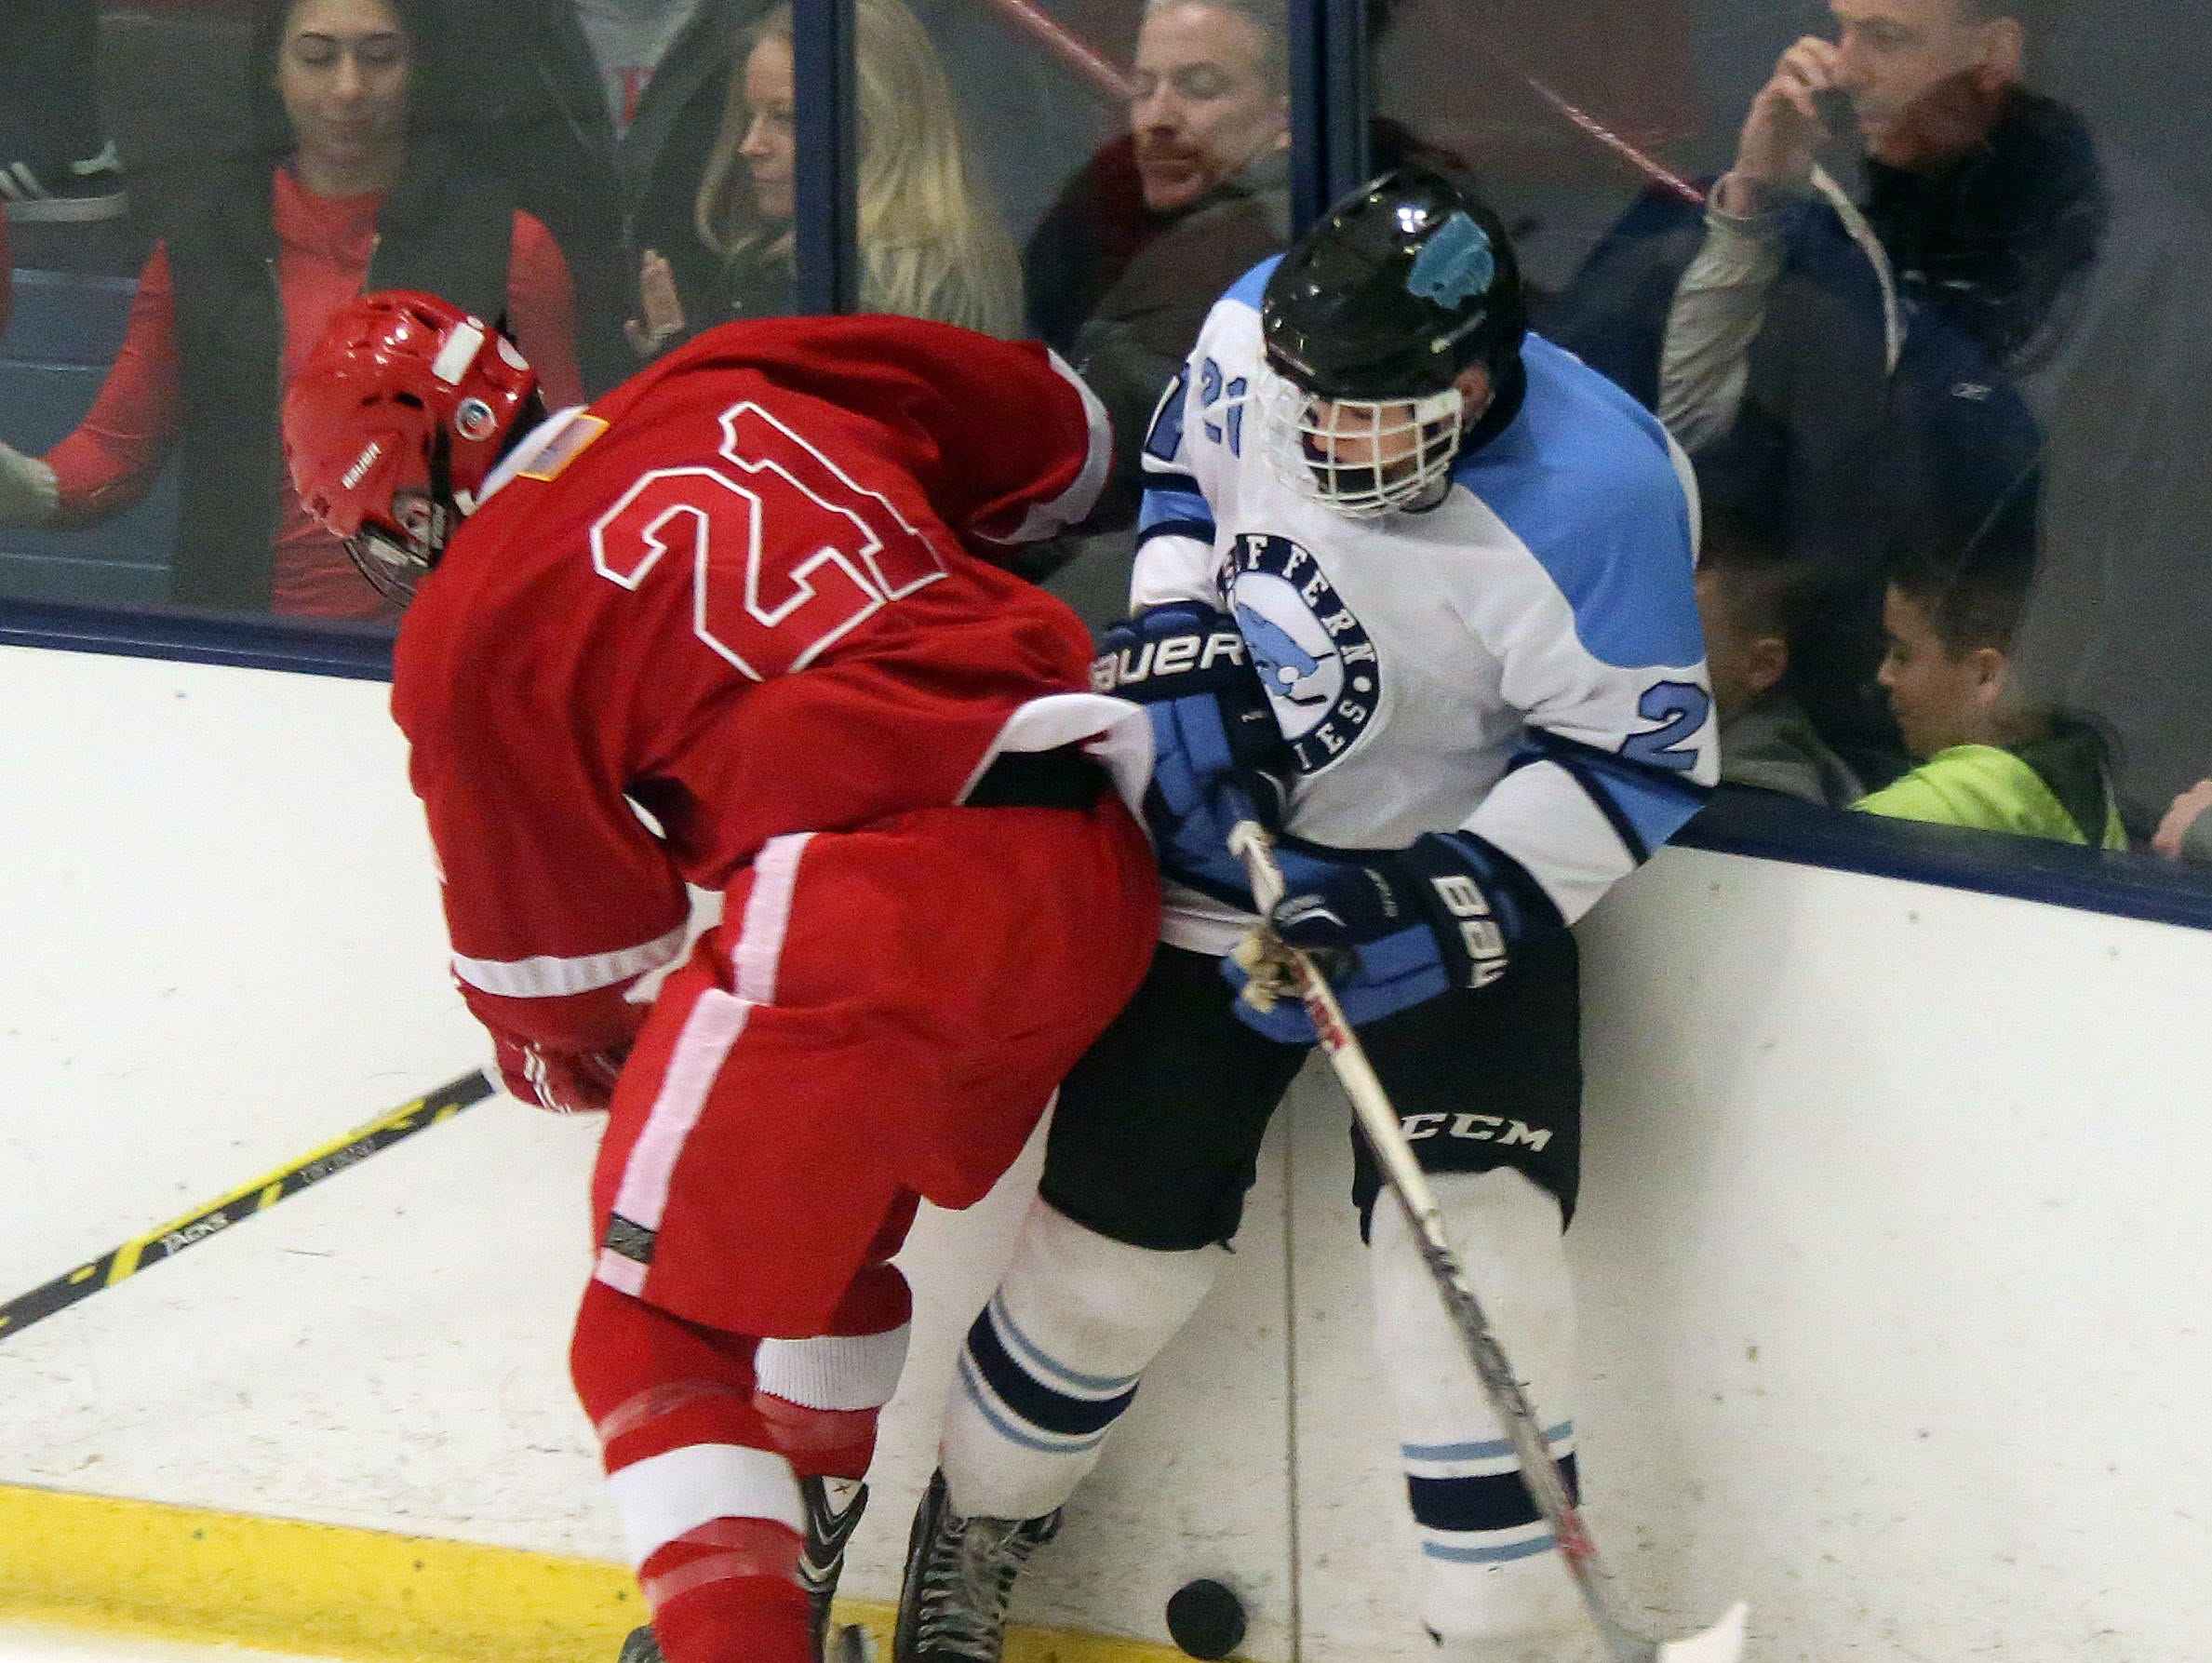 Suffern's Kyle Foresta (21) and North Rockland's Steven Apicella (21) fight for control of the puck during the first period Section 1 Division 1 semifinal hockey at the Sport-O-Rama in Monsey at Feb. 26, 2016.